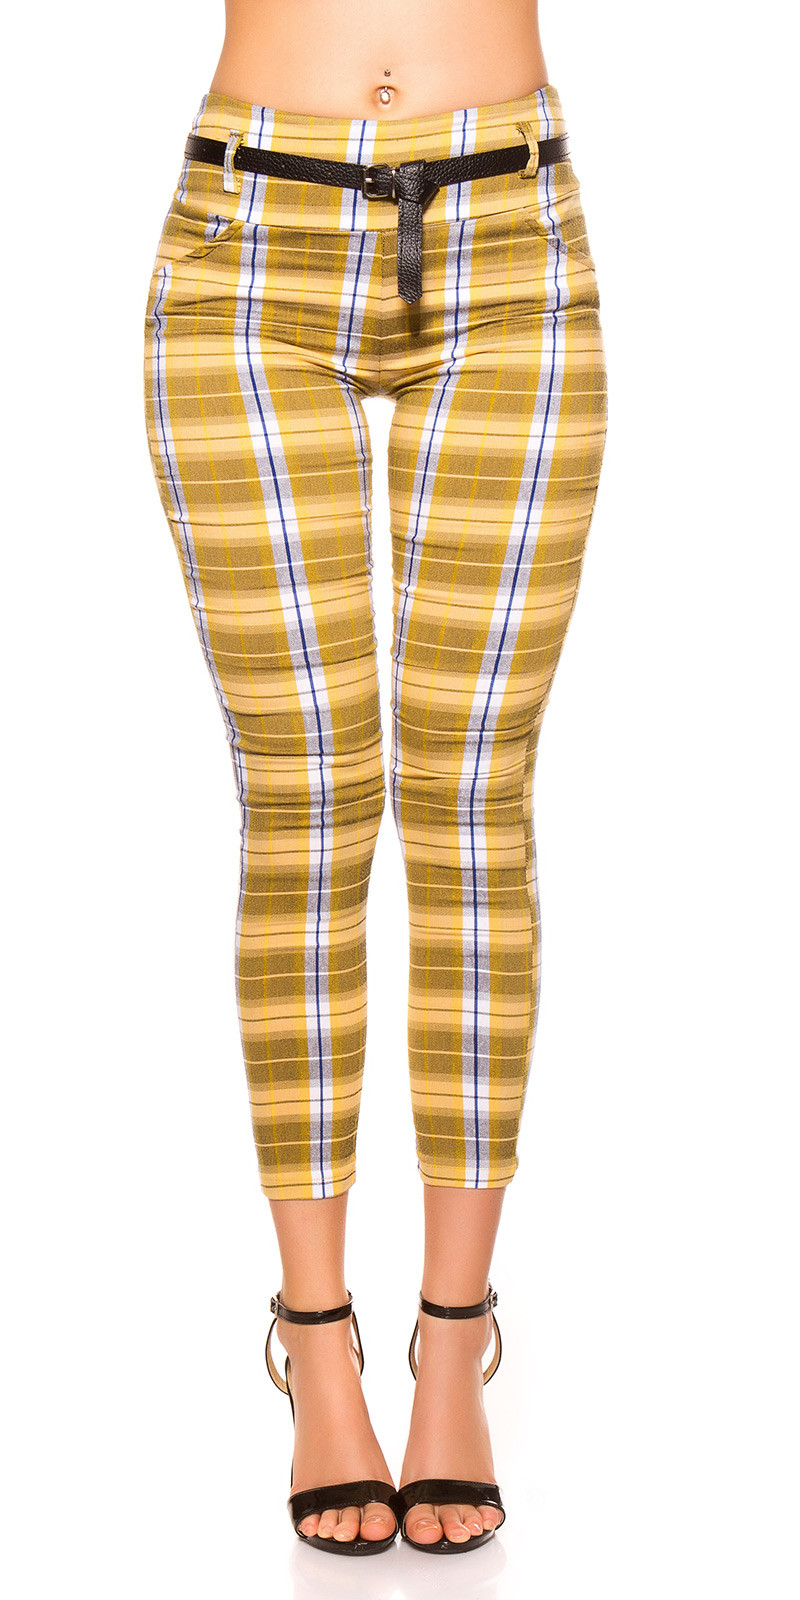 2ee419e11 hhchecked_treggings_with_belt__Color_YELLOW_Size_S_0000H62942_GELB_1 ·  hhchecked_treggings_with_belt__Color_YELLOW_Size_S_0000H62942_GELB_2